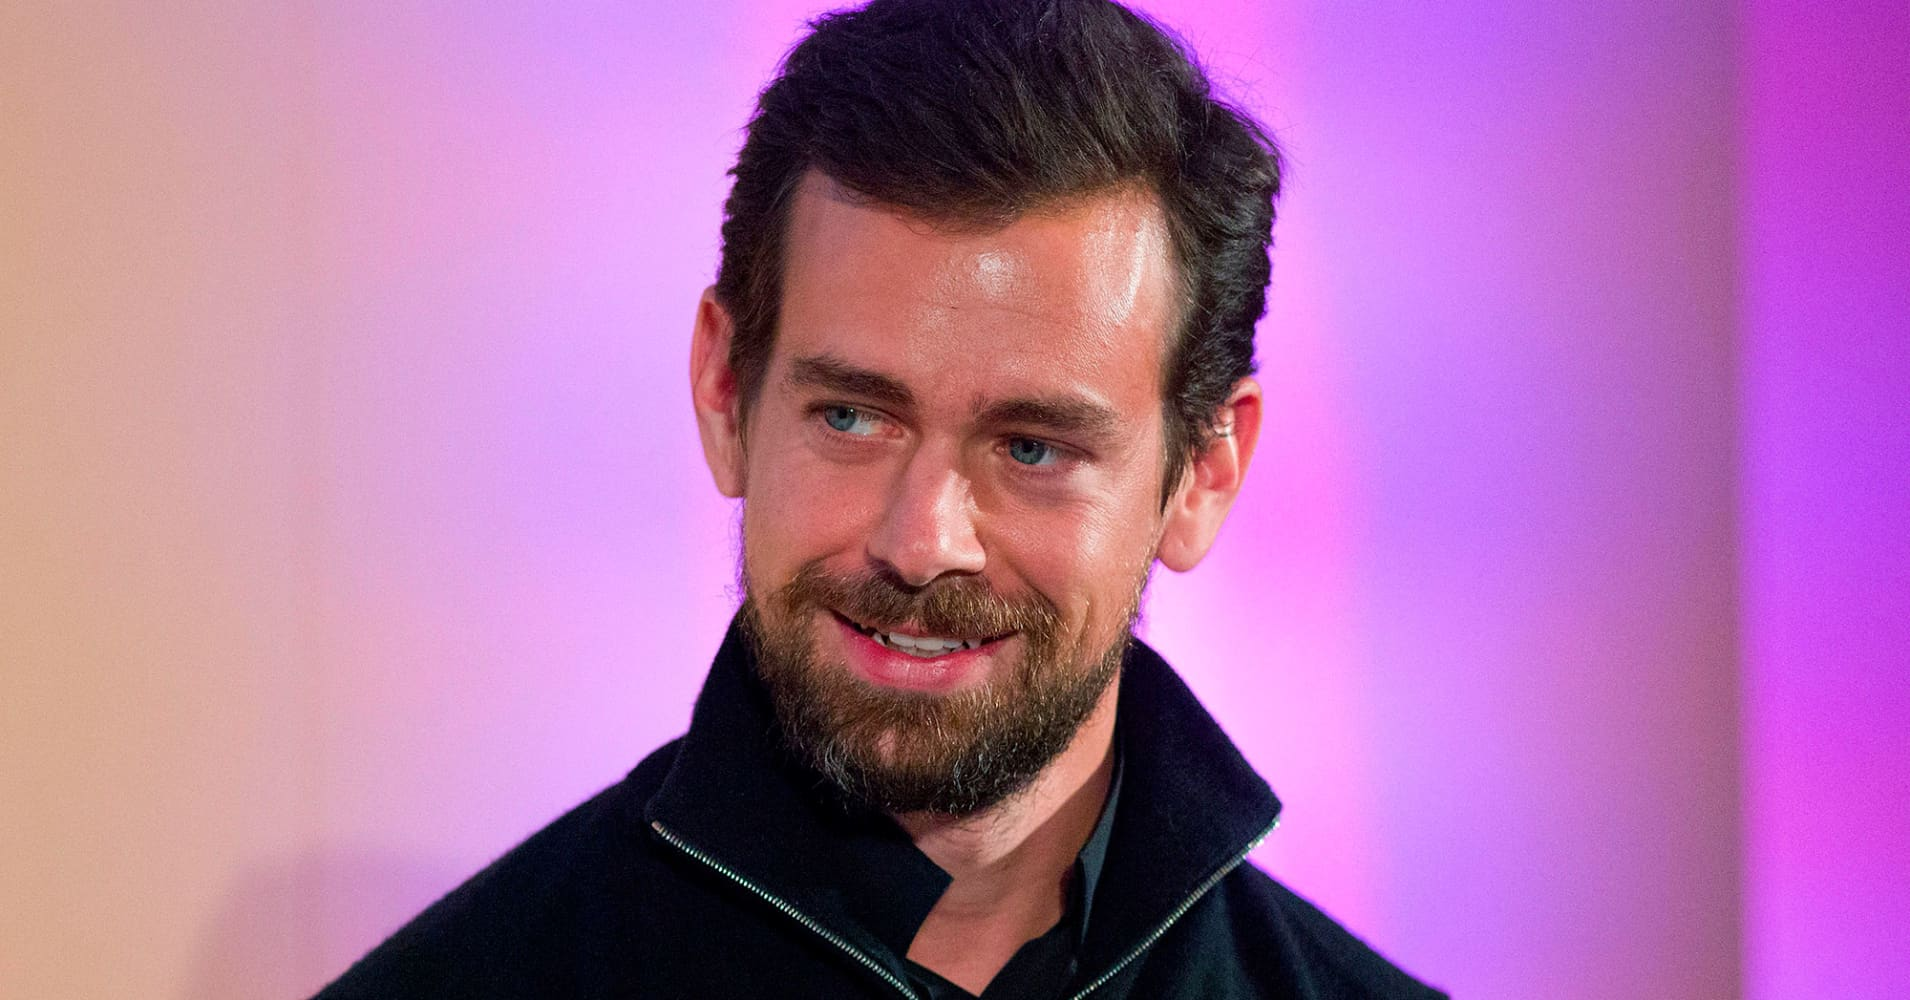 Jack Dorsey, CEO of Square, Chairman of Twitter and a founder of both, holds an event in London on November 20, 2014.